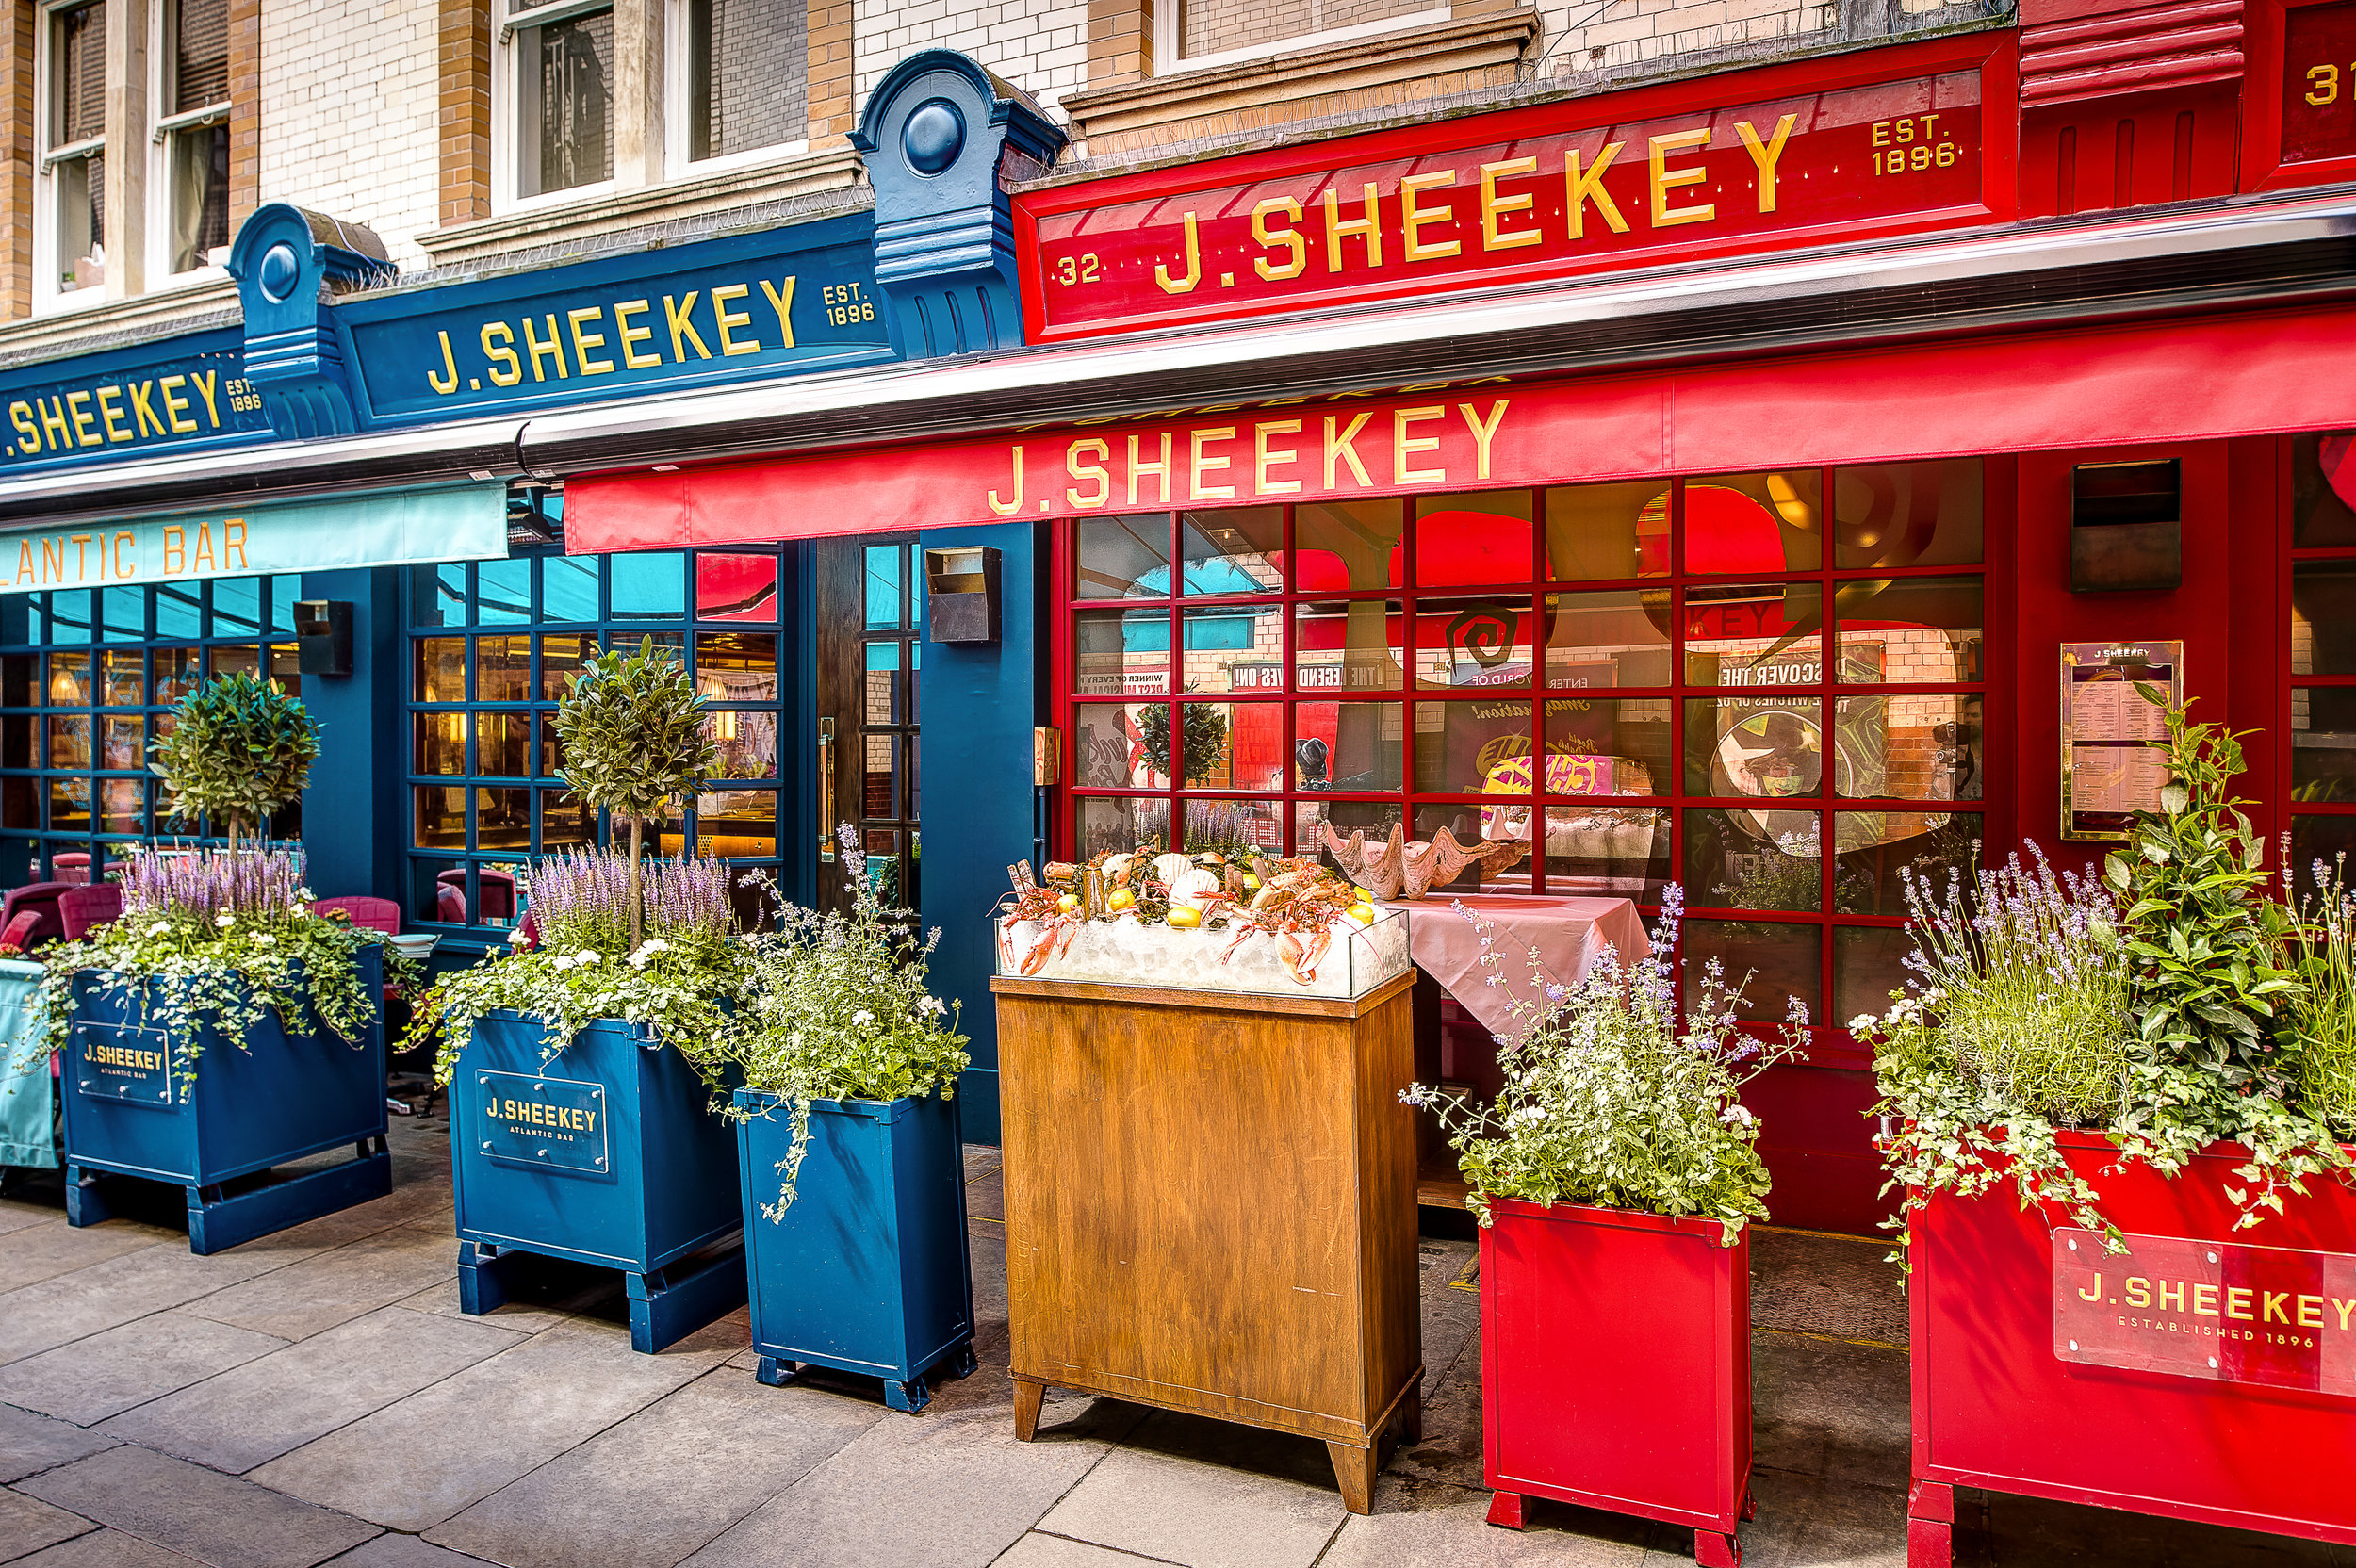 J Sheekey exterior shot by Paul Winch-Furness HR (1).jpg